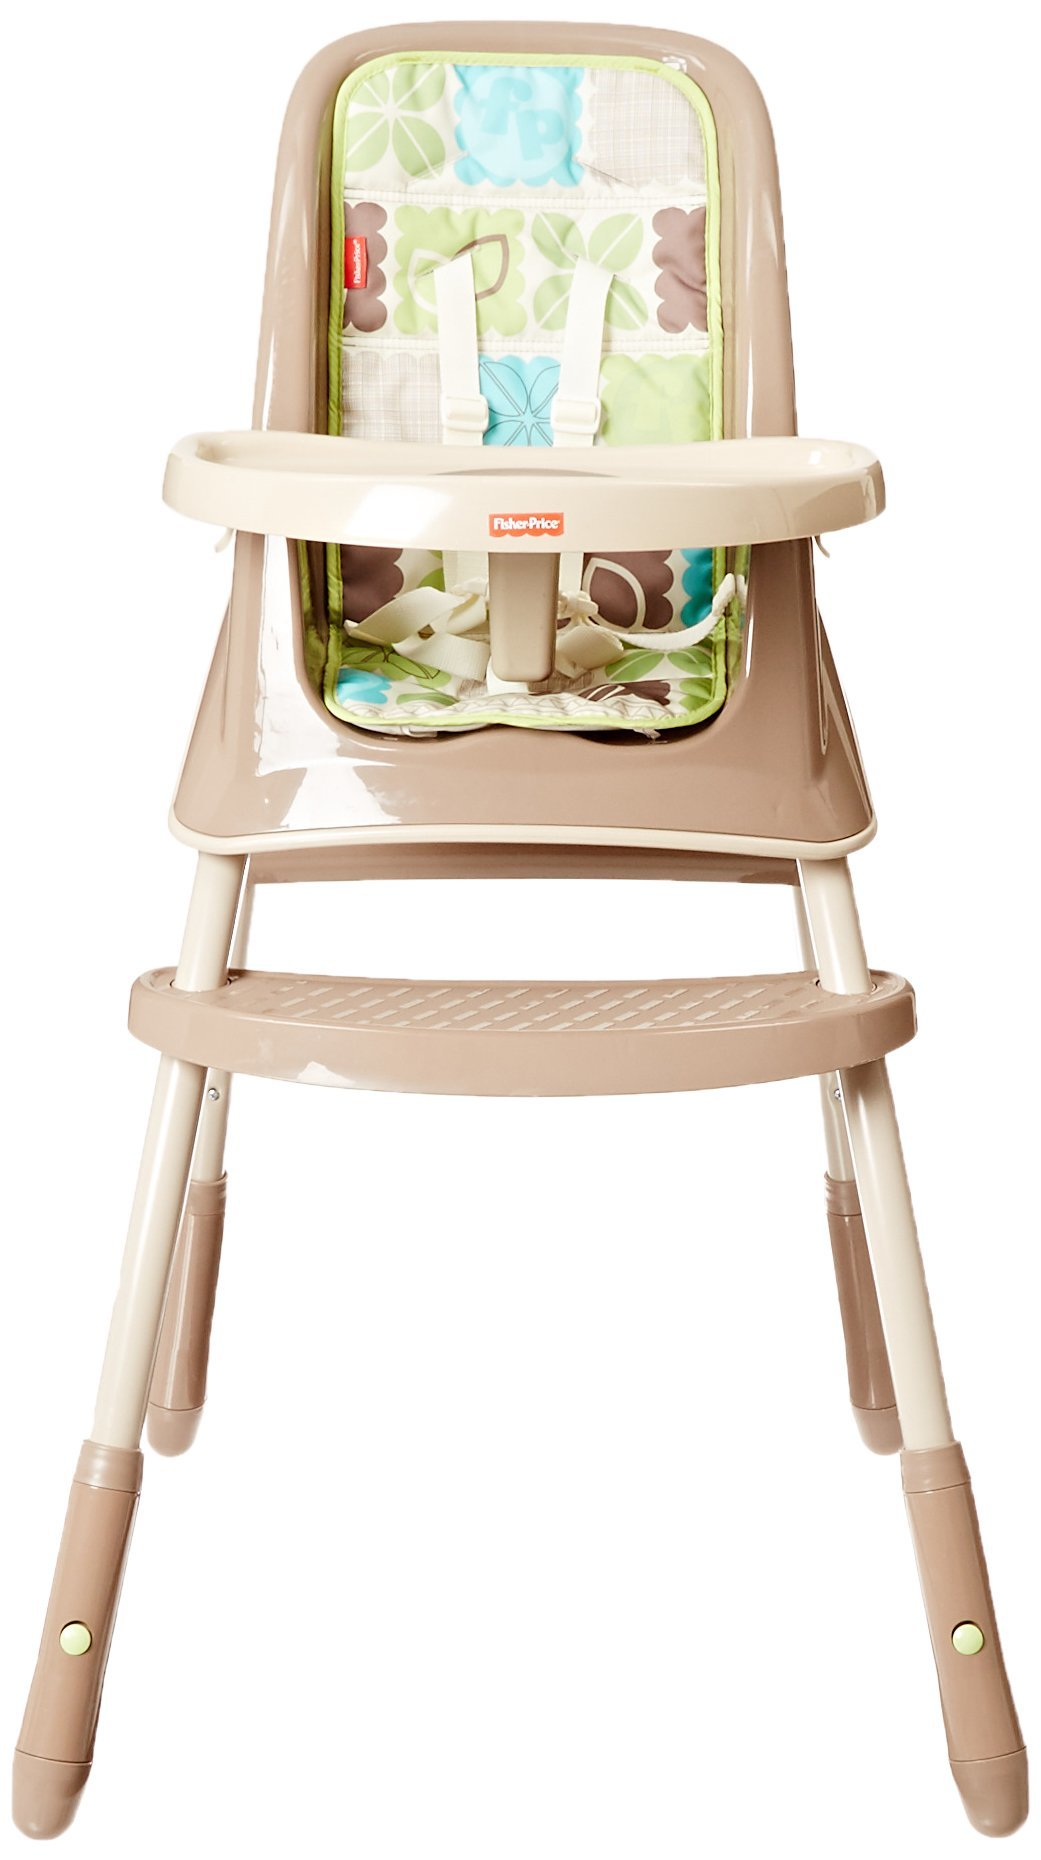 Price Rainforest Friends Grow With Me High Chair